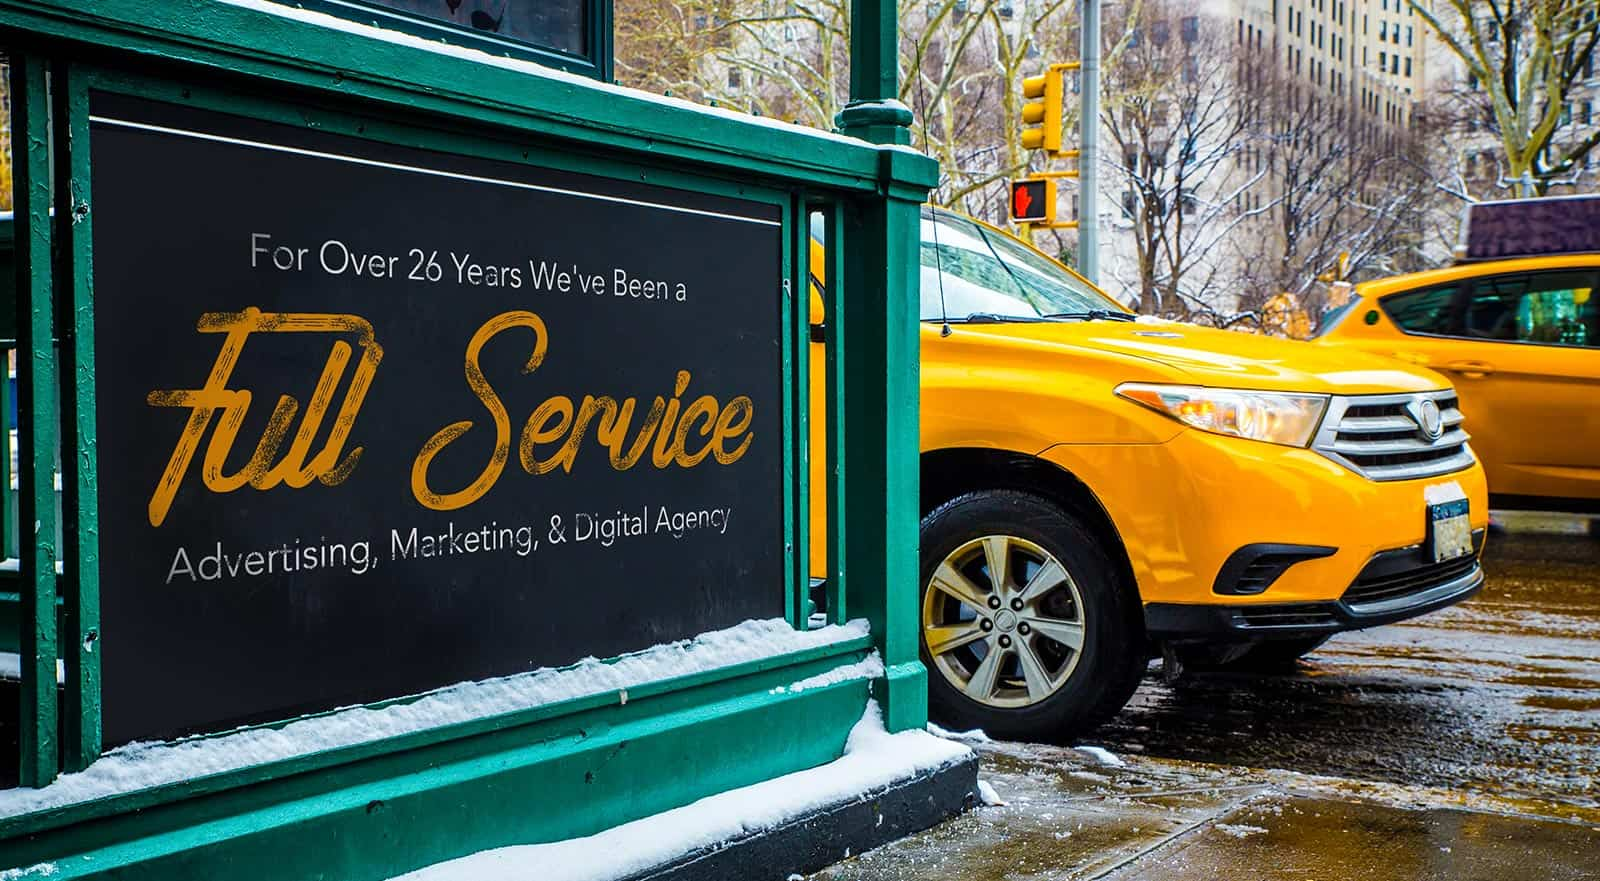 New York City Scene with taxi cap and a sign stating 'For Over 26 Years We've Been a Full Service Advertising, Marketing, & Digital Agency'